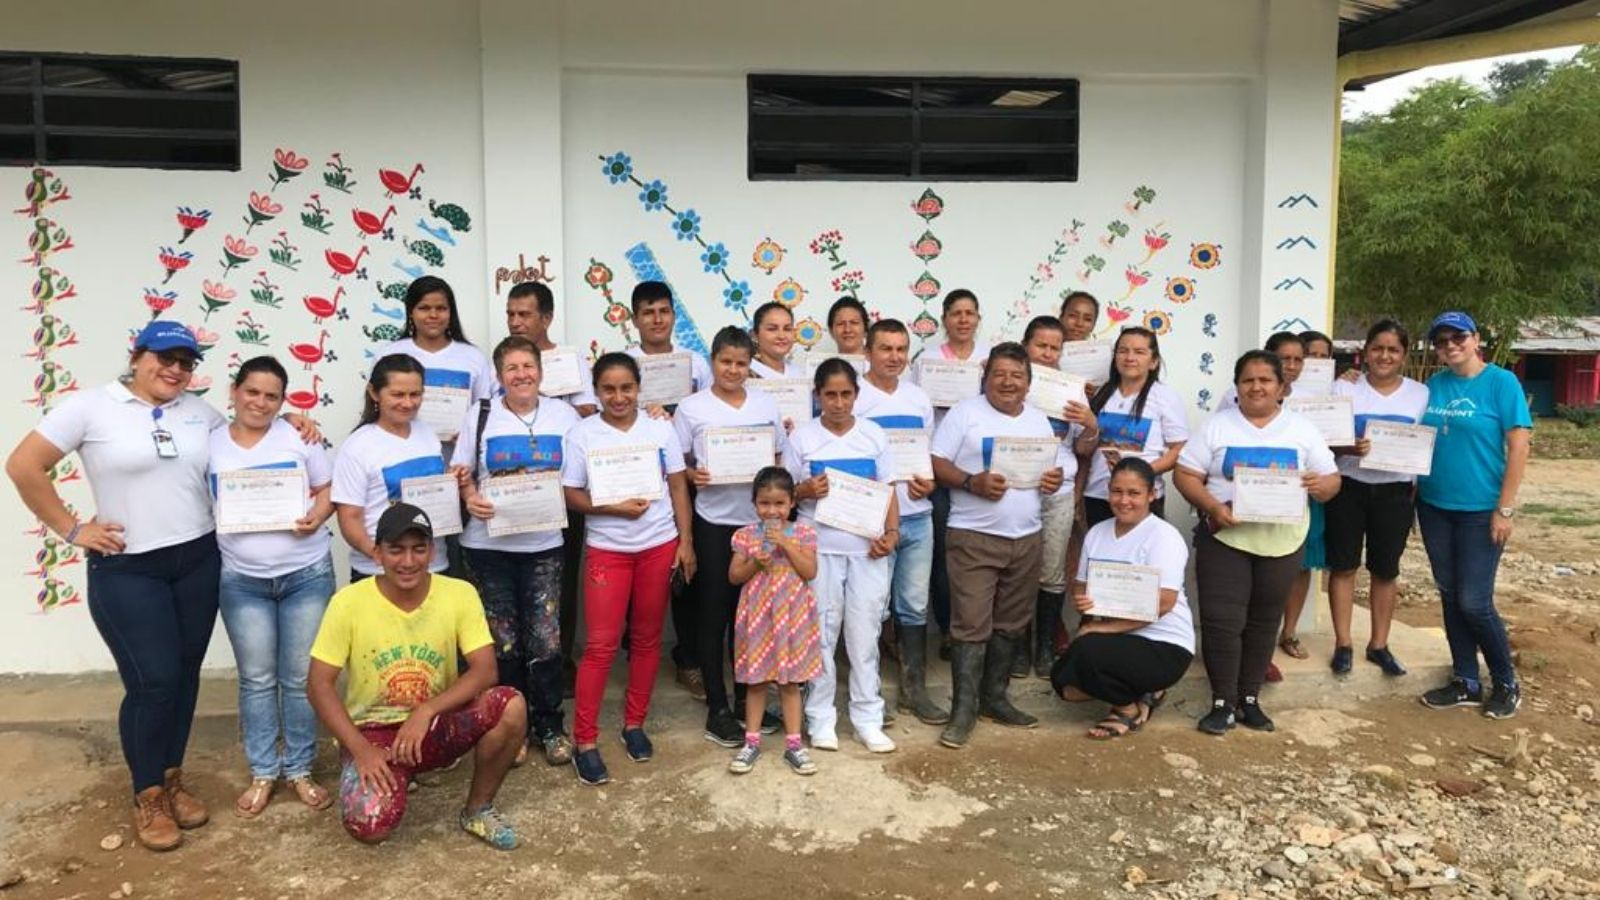 Program participants from San Antonio, Cordoba, hold certificates after participating in the Casa Pintada program.